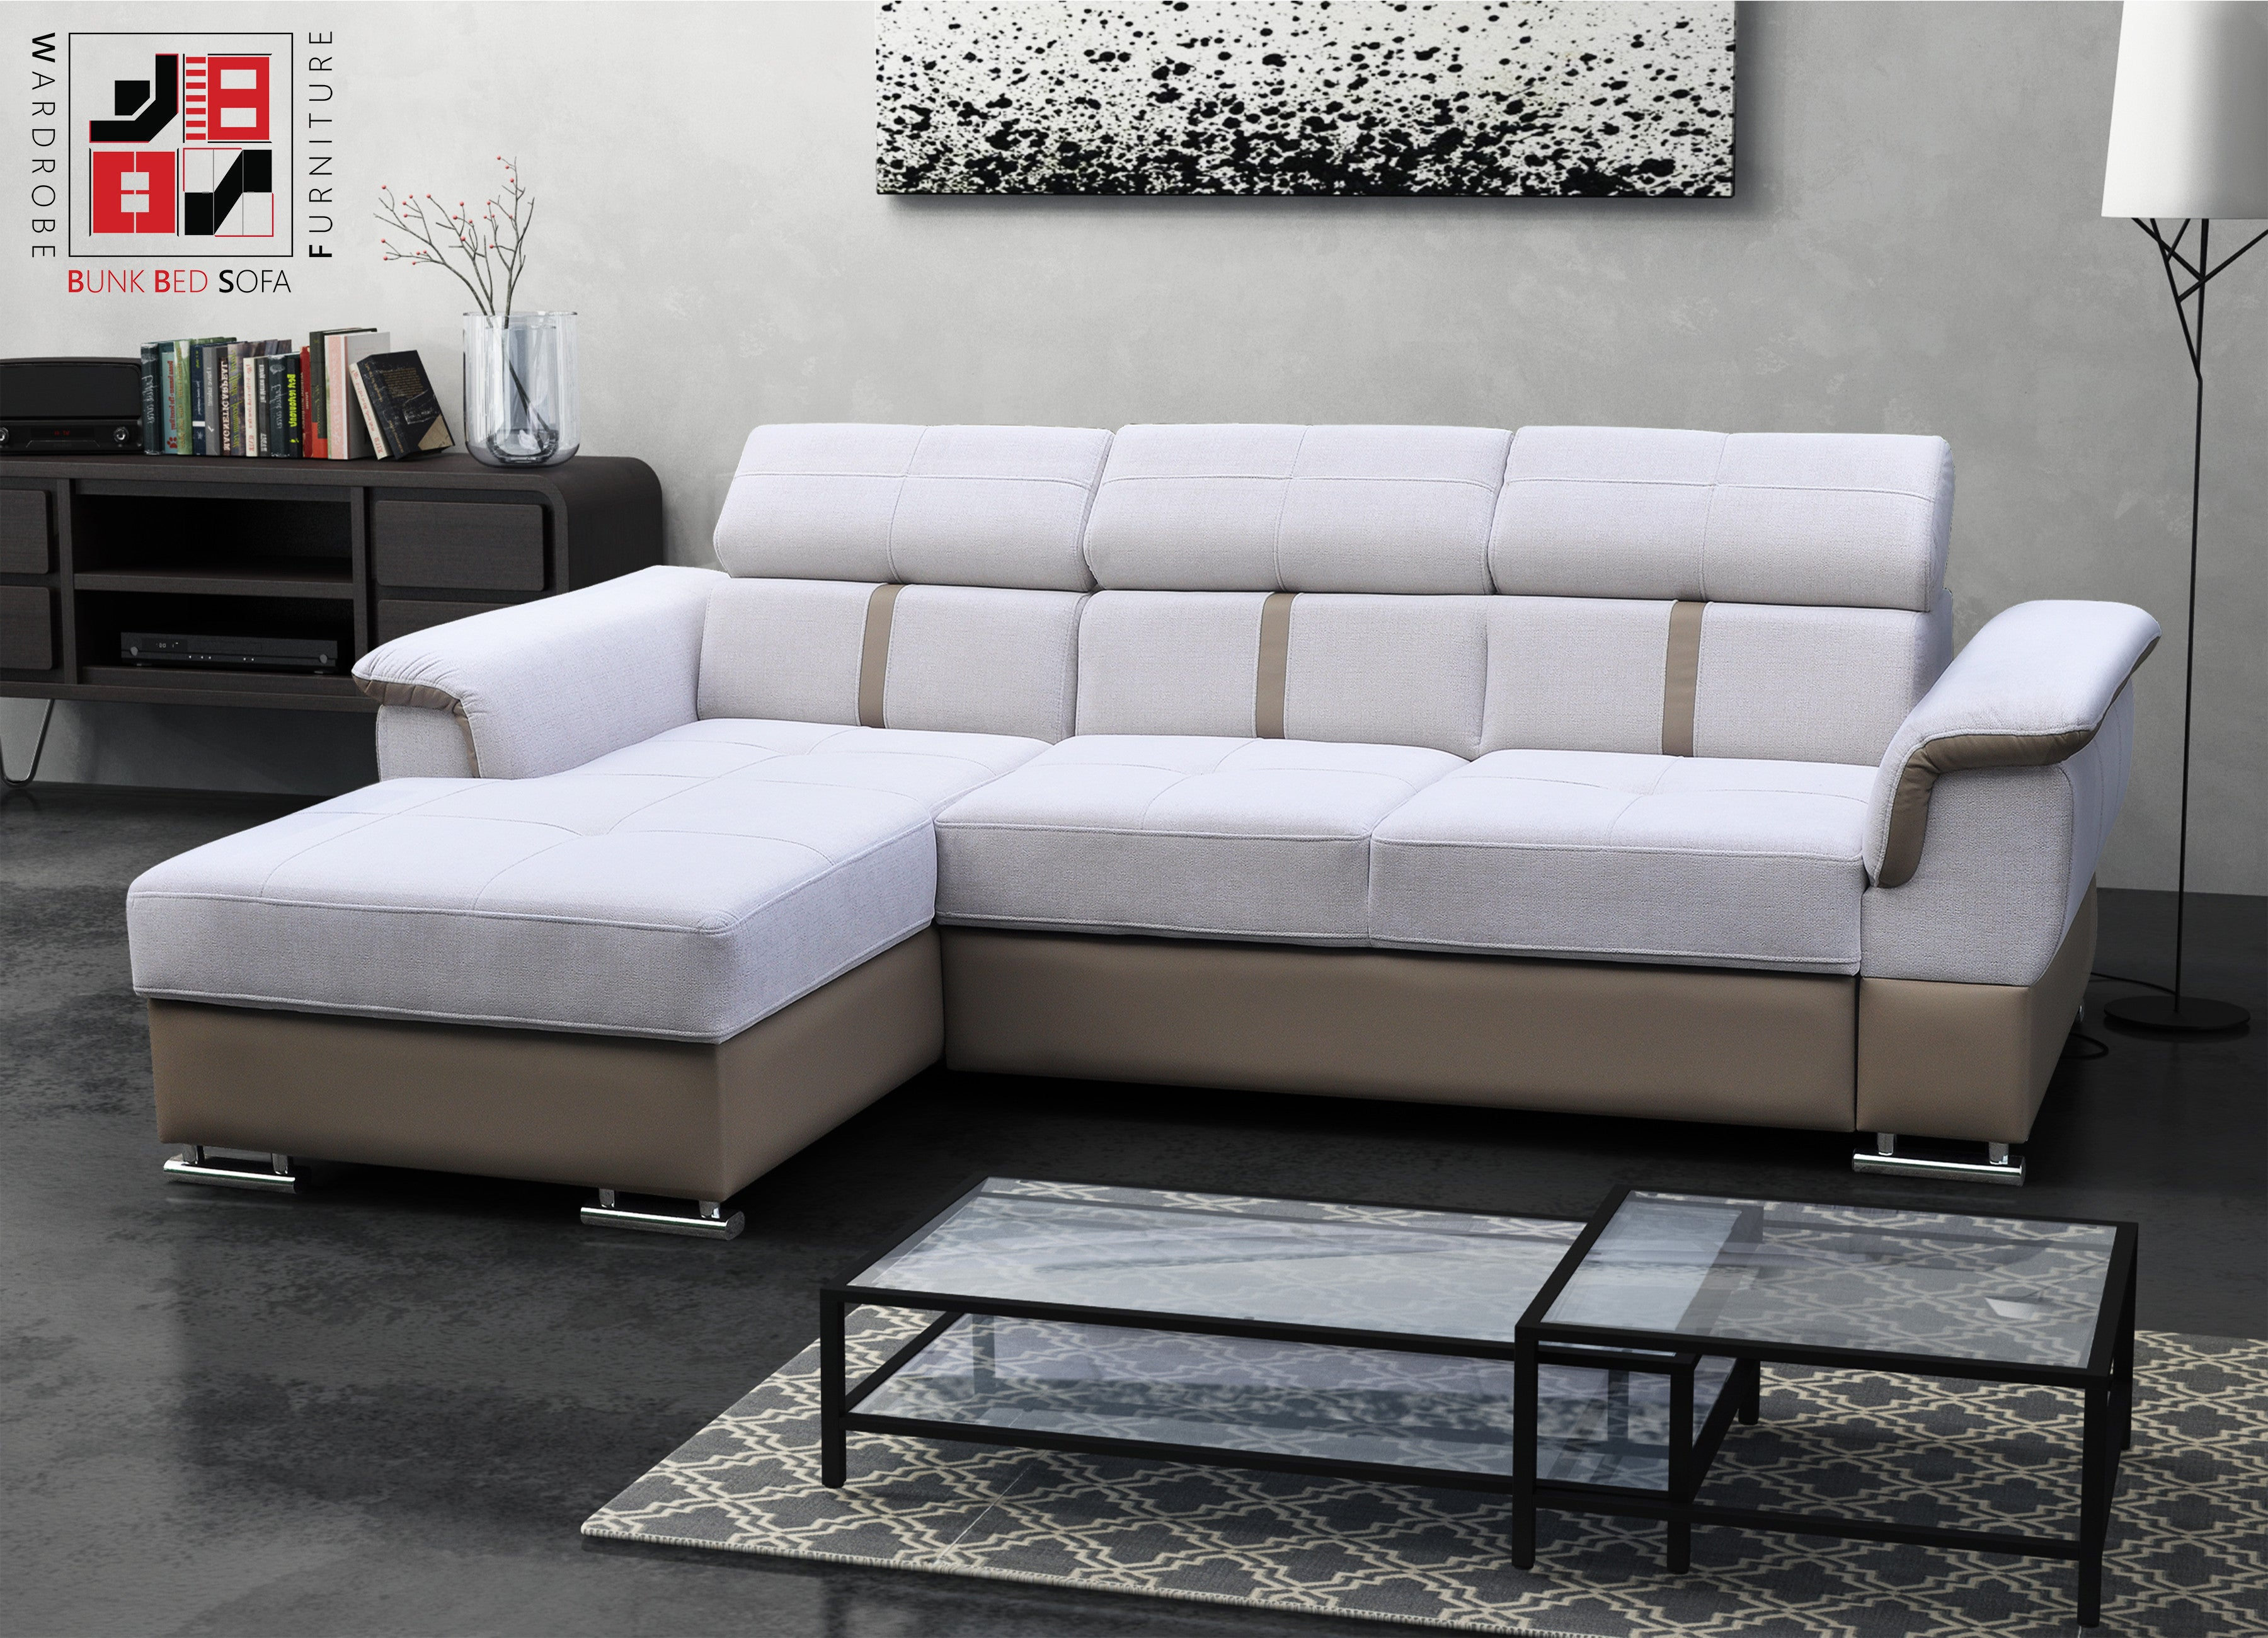 HAVANA Extremely fortable corner sofa bed with spreading